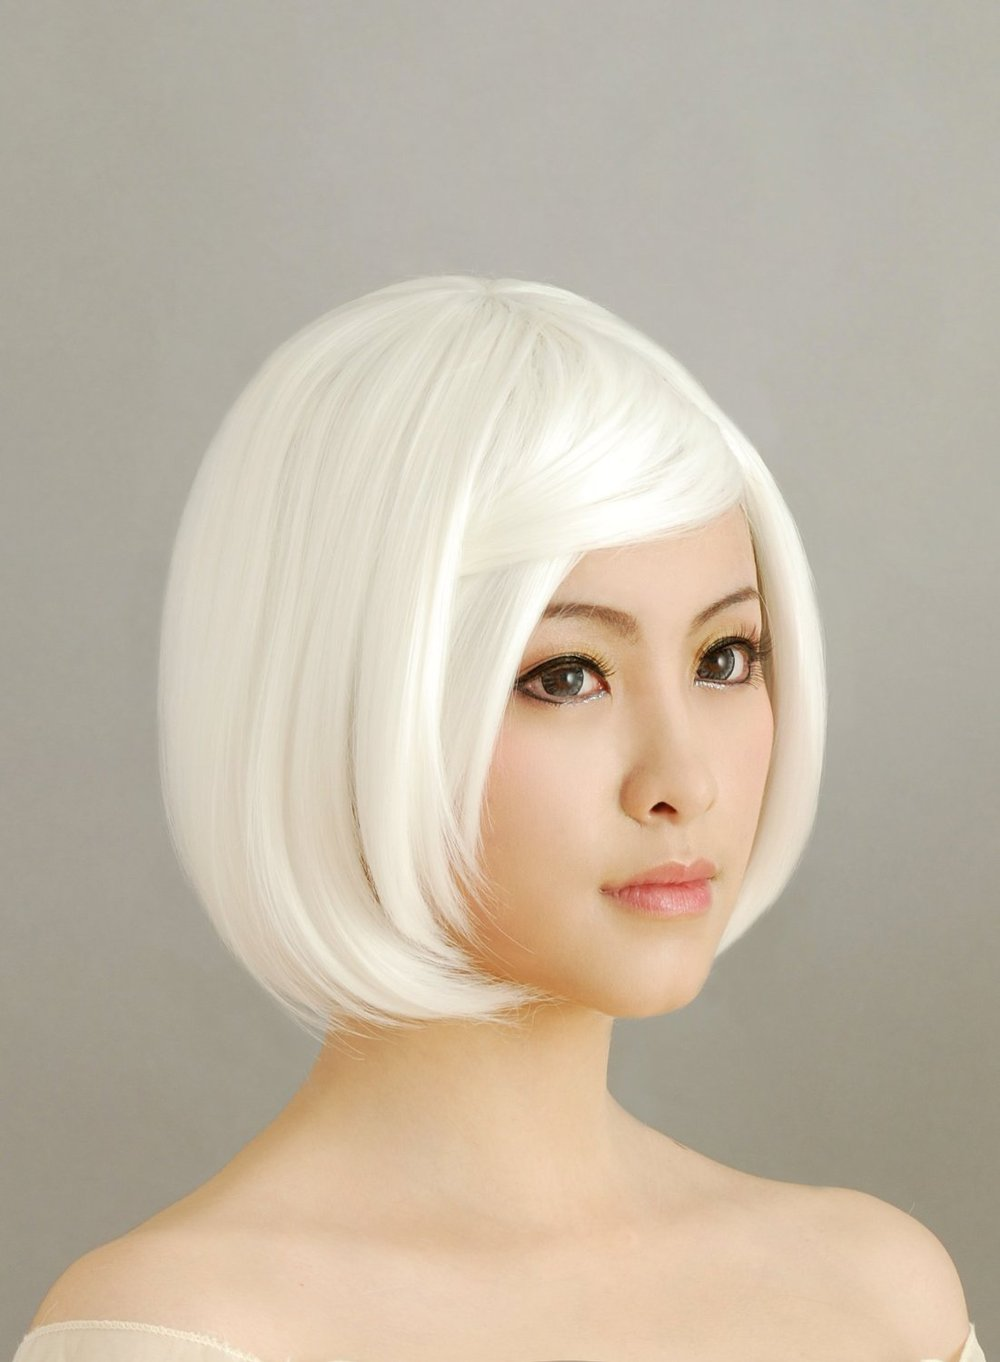 White Short Straight BOB Cosplay Wig Heat Resistance Anime Show   Party  Wig  Performance Hair Full Wigs + Free Cap 53f674171a3f